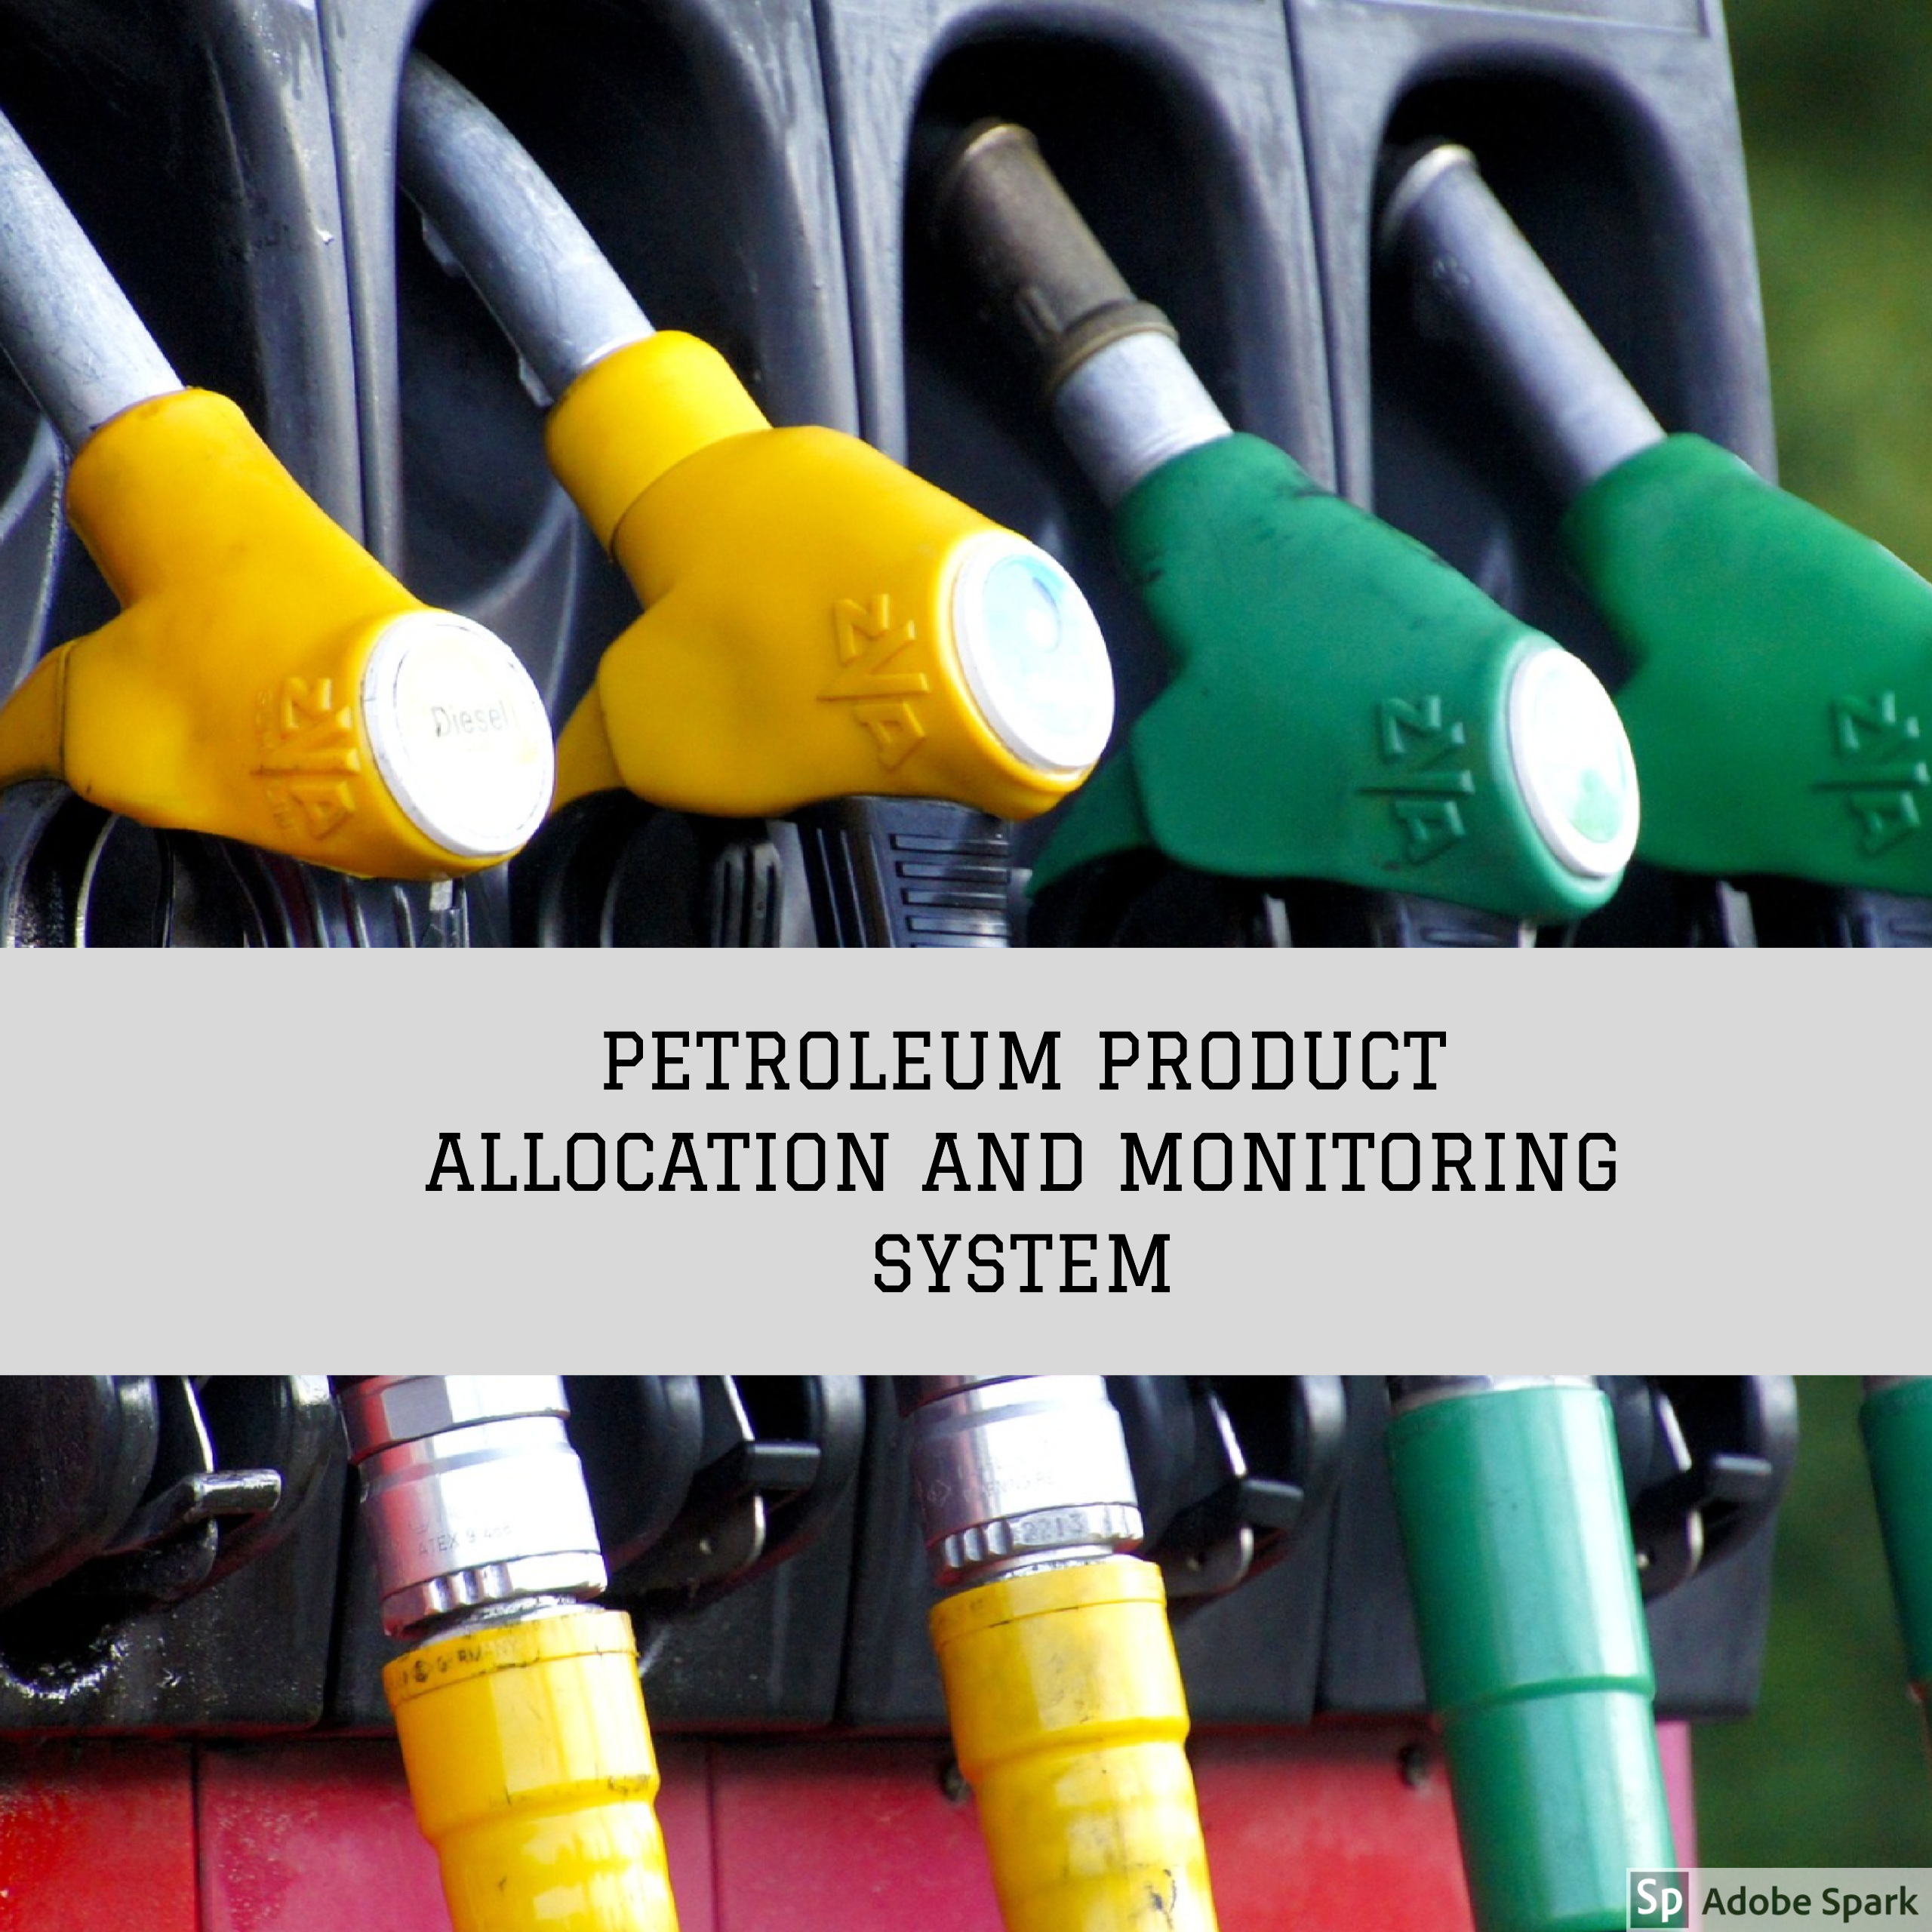 DESIGN AND IMPLEMENTATION PETROLEUM PRODUCT ALLOCATION AND MONITORING SYSTEM - CodeMint Mint for Sale